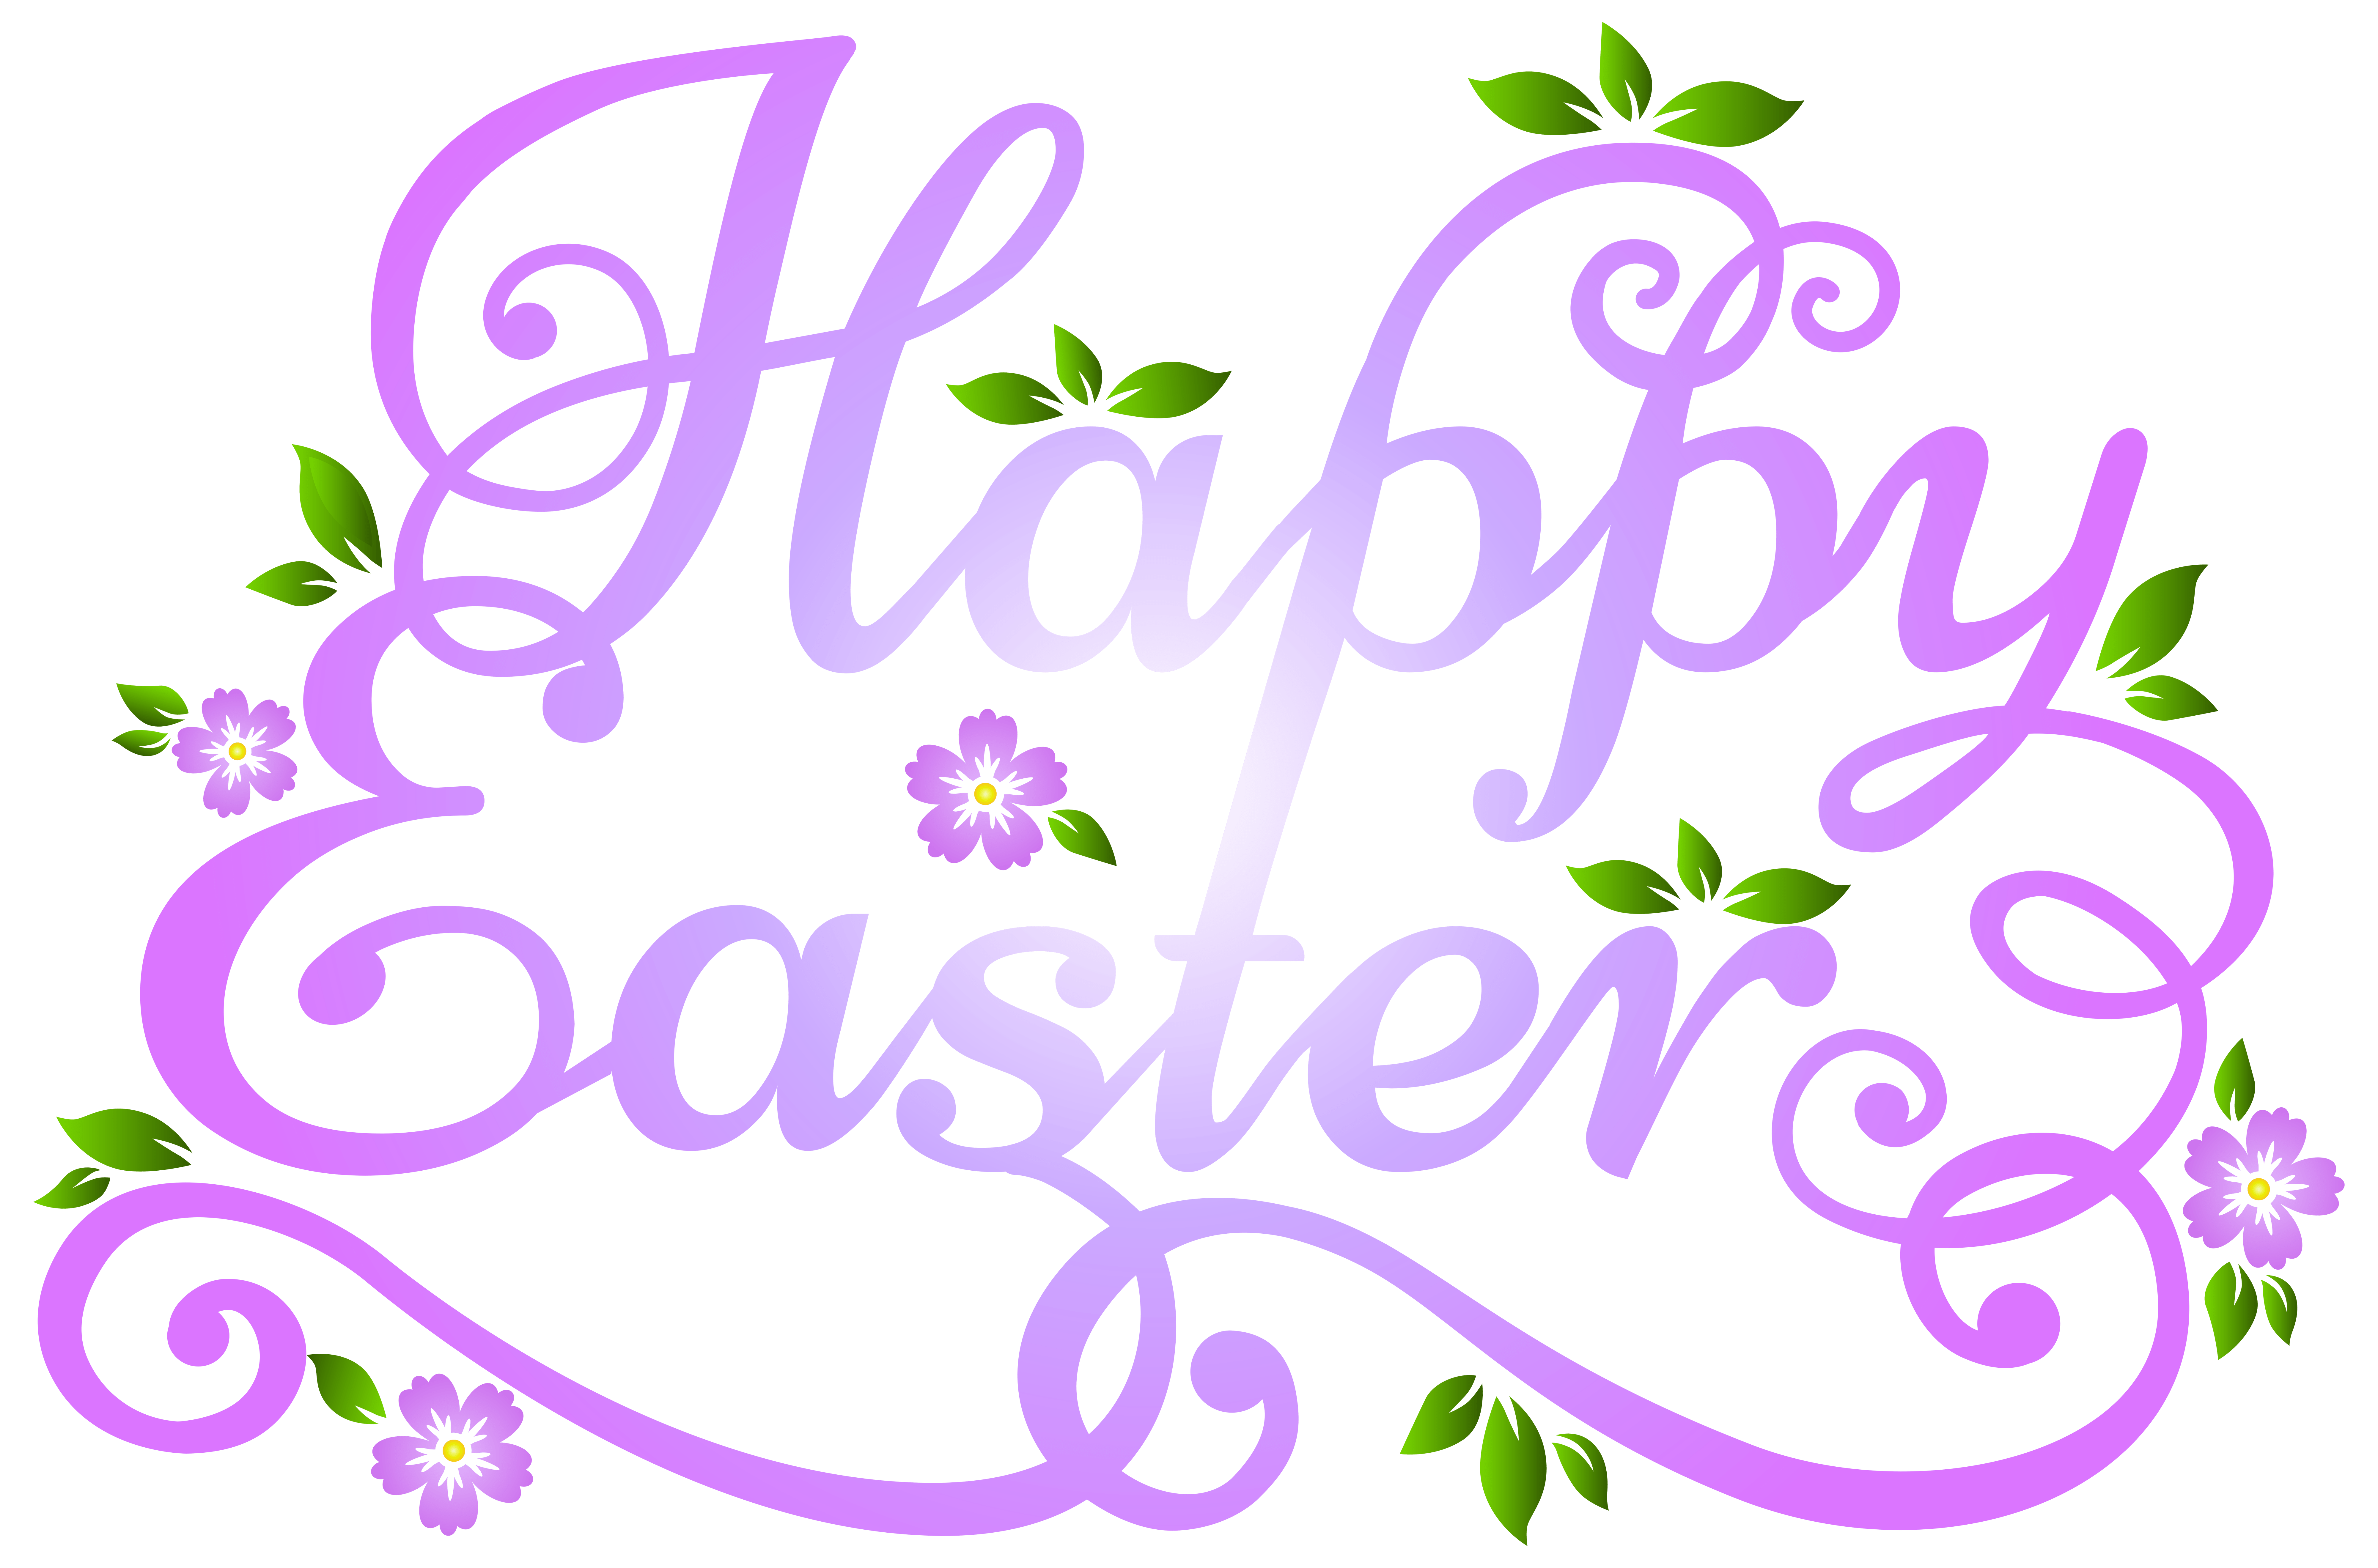 Happy easter cross clipart free Happy Easter Clip Art – Merry Christmas And Happy New Year 2018 free